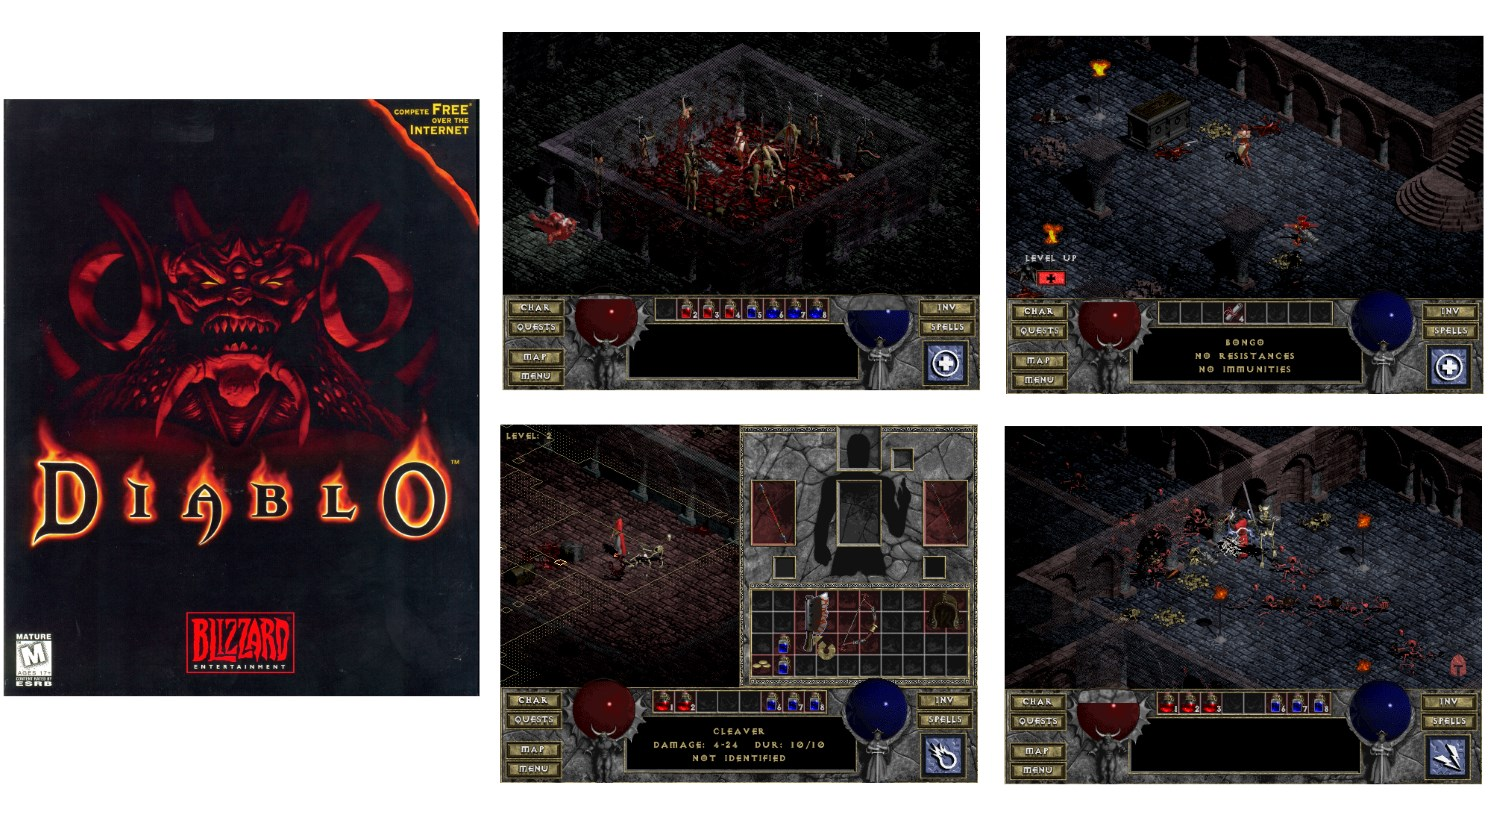 GOG resurrects the original Diablo with HD resolution support